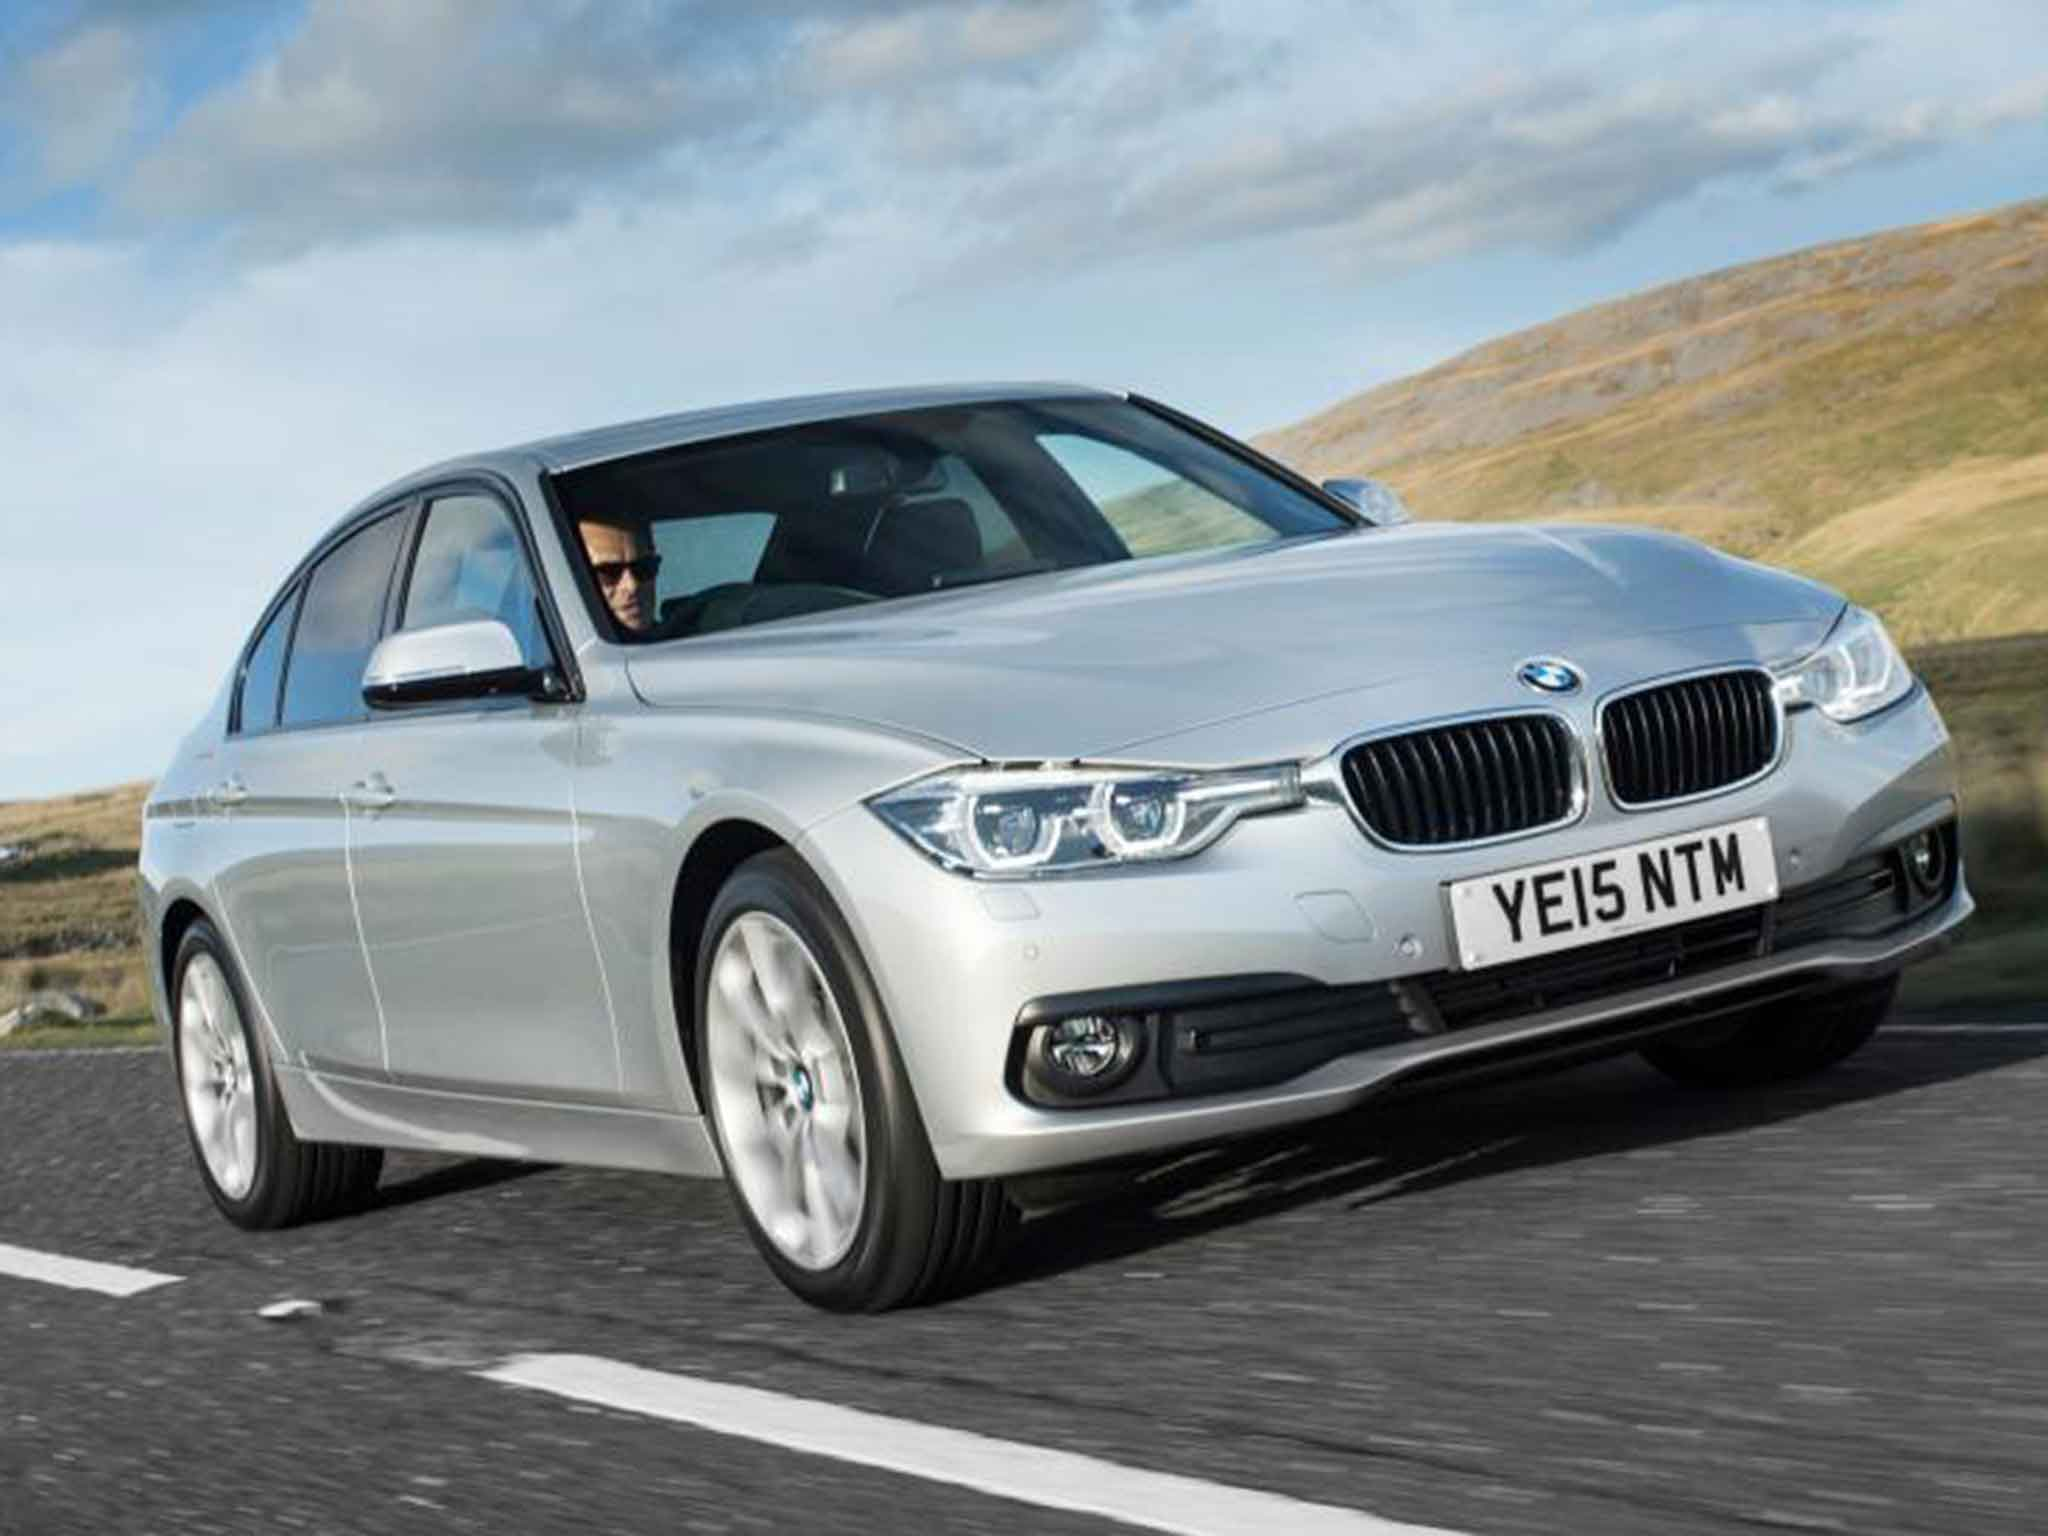 BMW 3 Series 318i Sport, motoring review: A three-cylinder engine in an  executive saloon? | The Independent